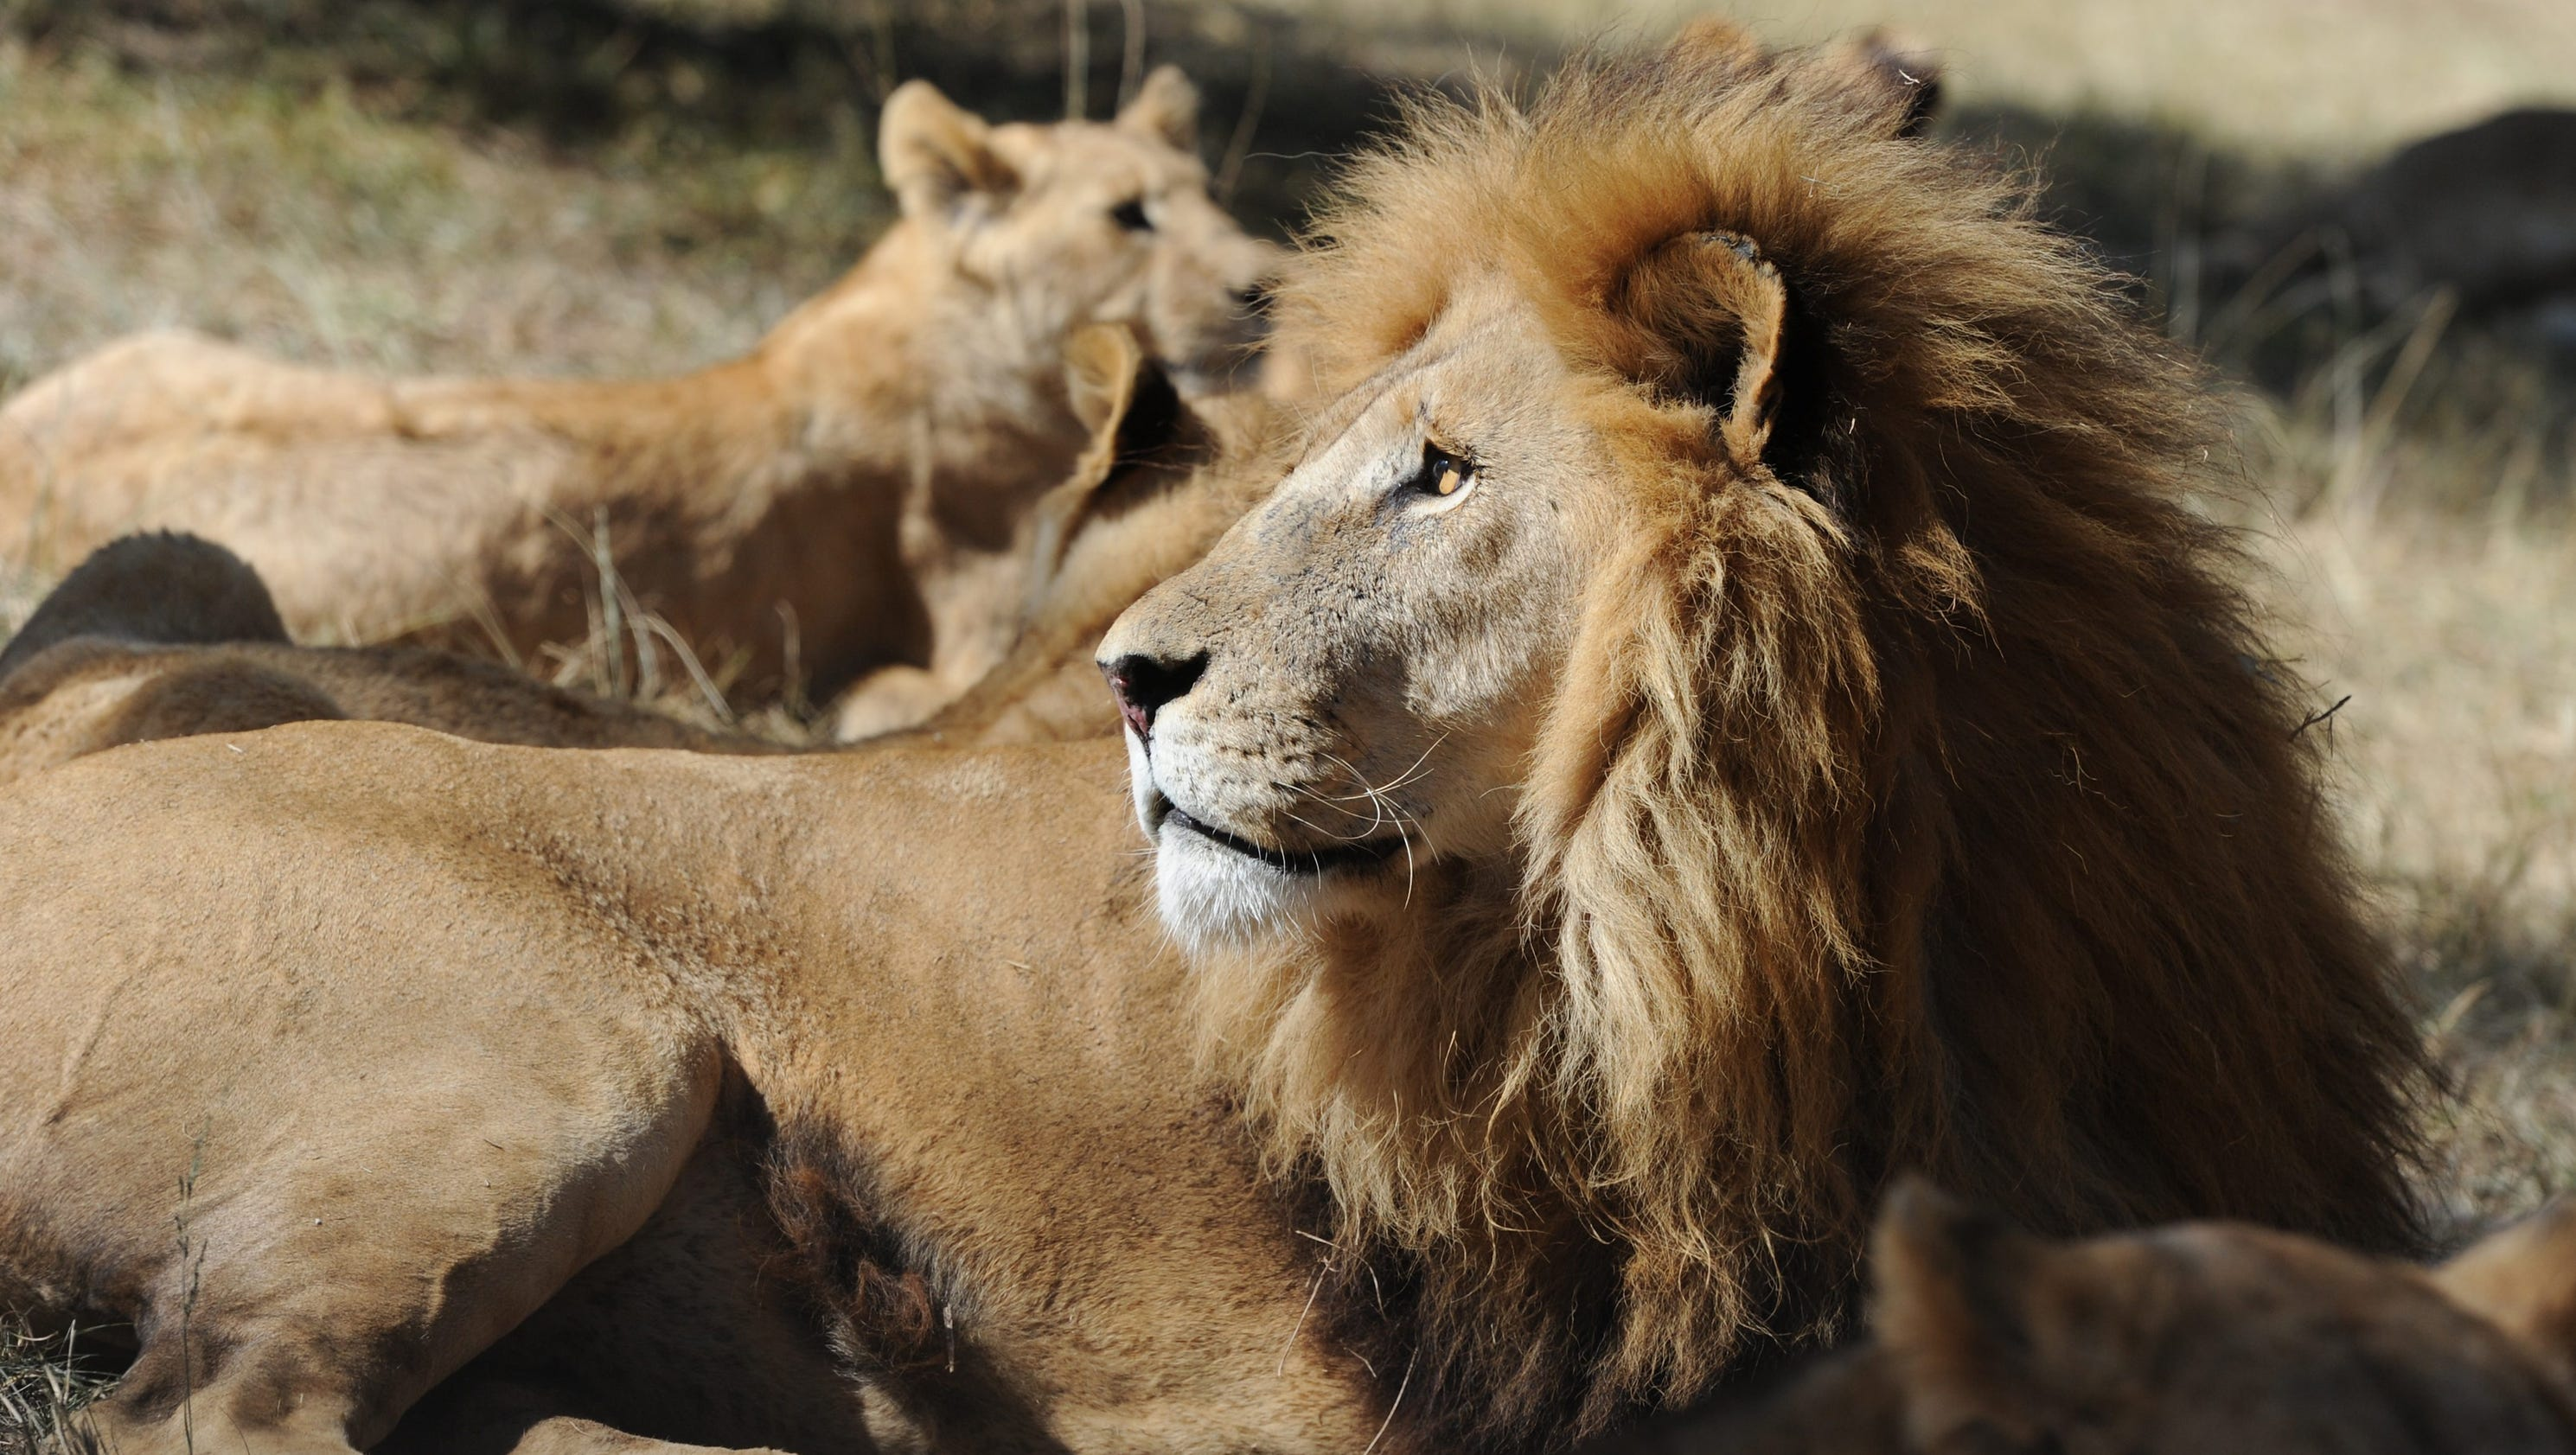 Tourist Mauled By Lion At African Park